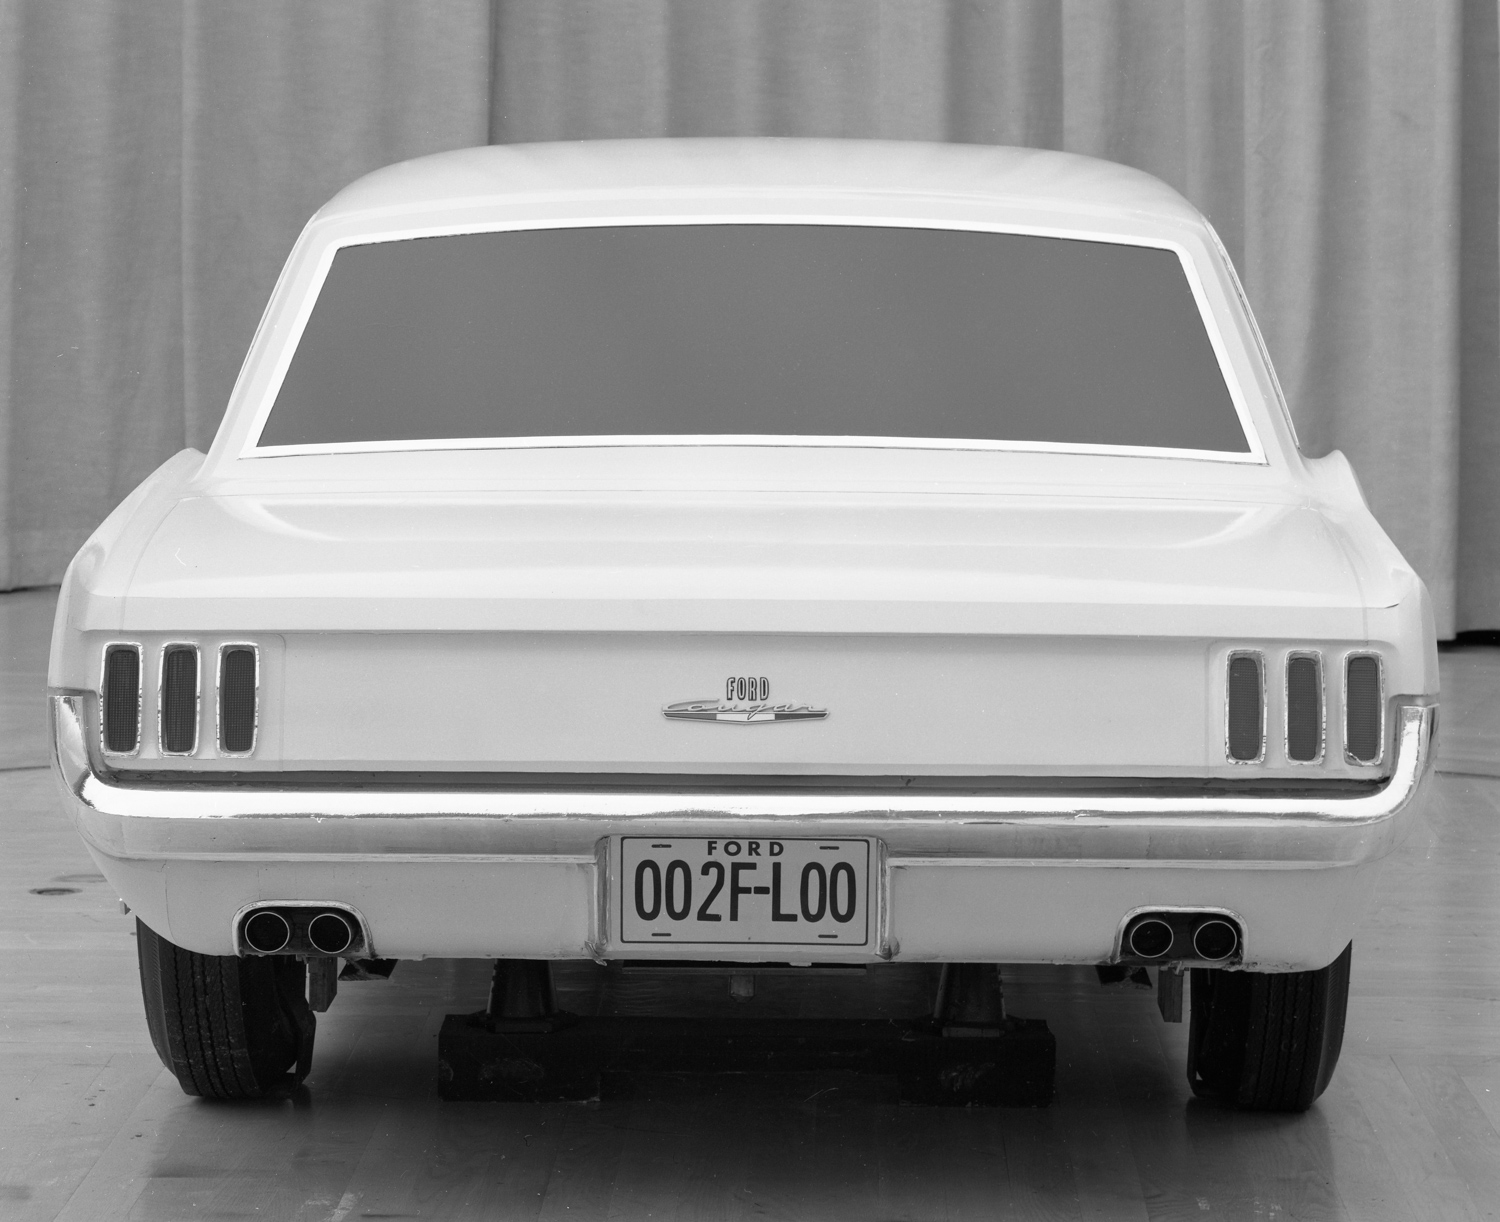 Ford Mustang cougar concept model rear